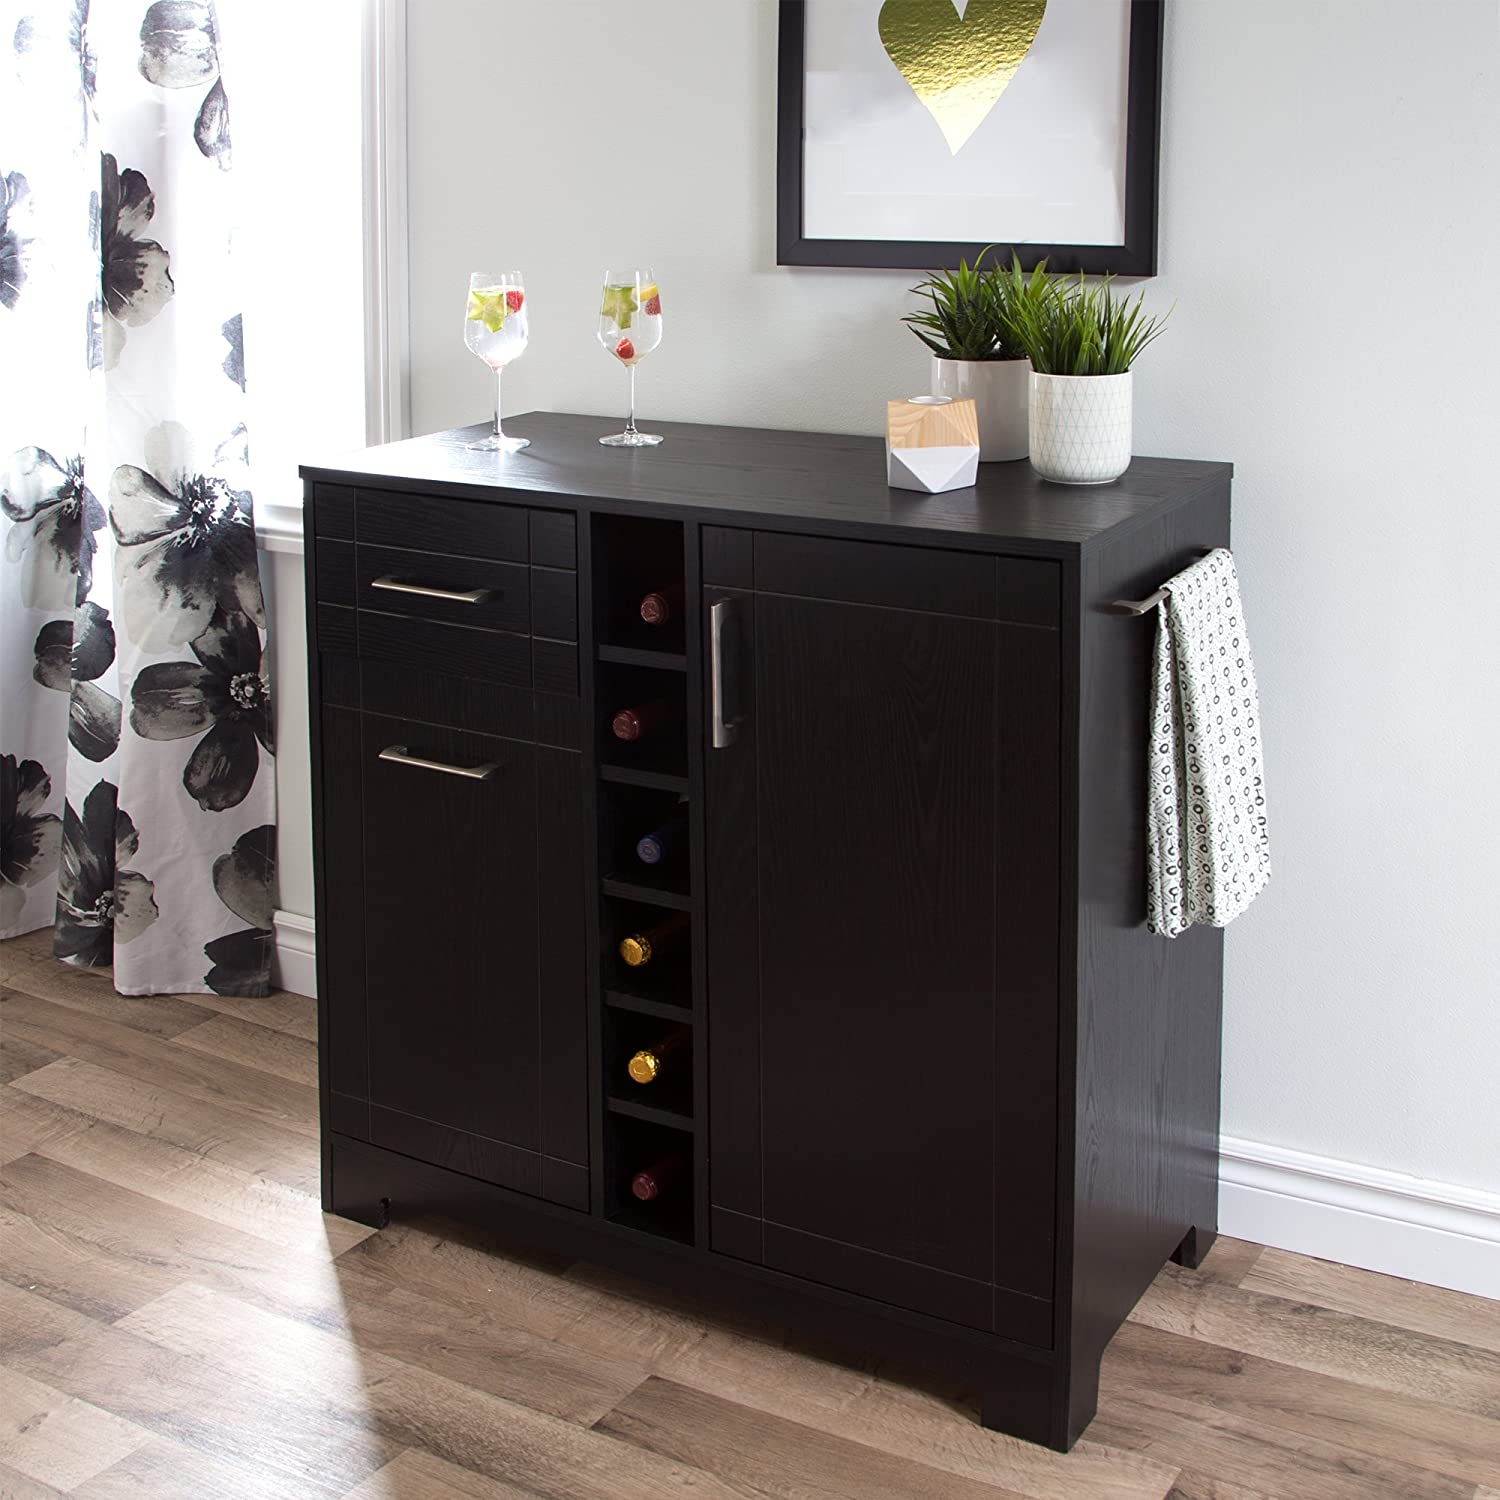 Amazon.ca: Home Bar Furniture: Home & Kitchen: Barstools, Bar ...